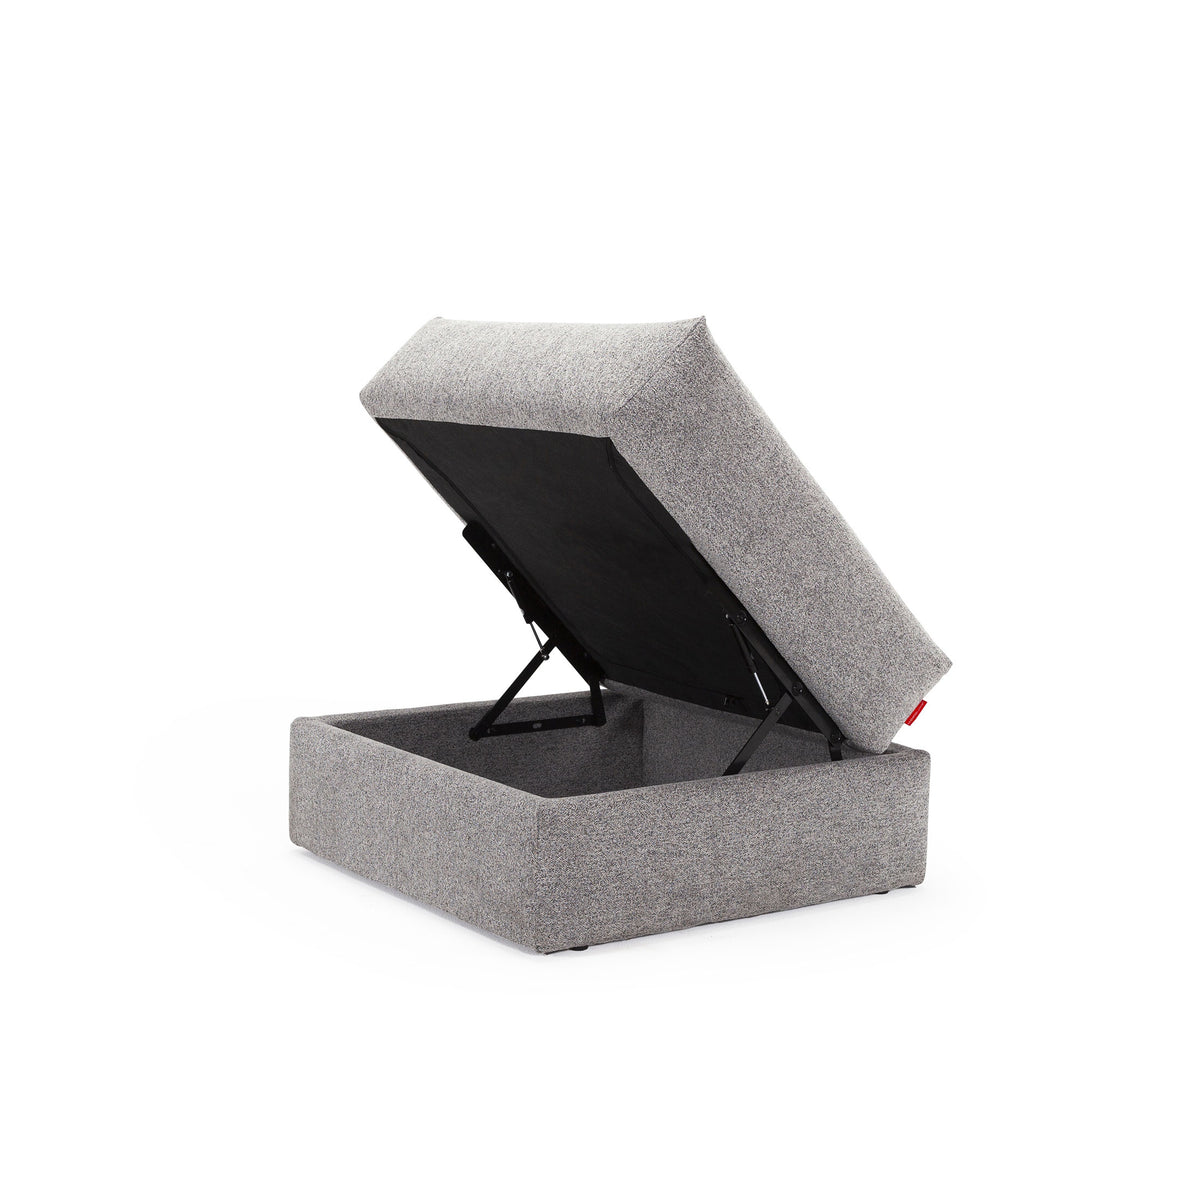 Outstanding Nest Storage Ottoman Same Fabric As Sofa Pdpeps Interior Chair Design Pdpepsorg